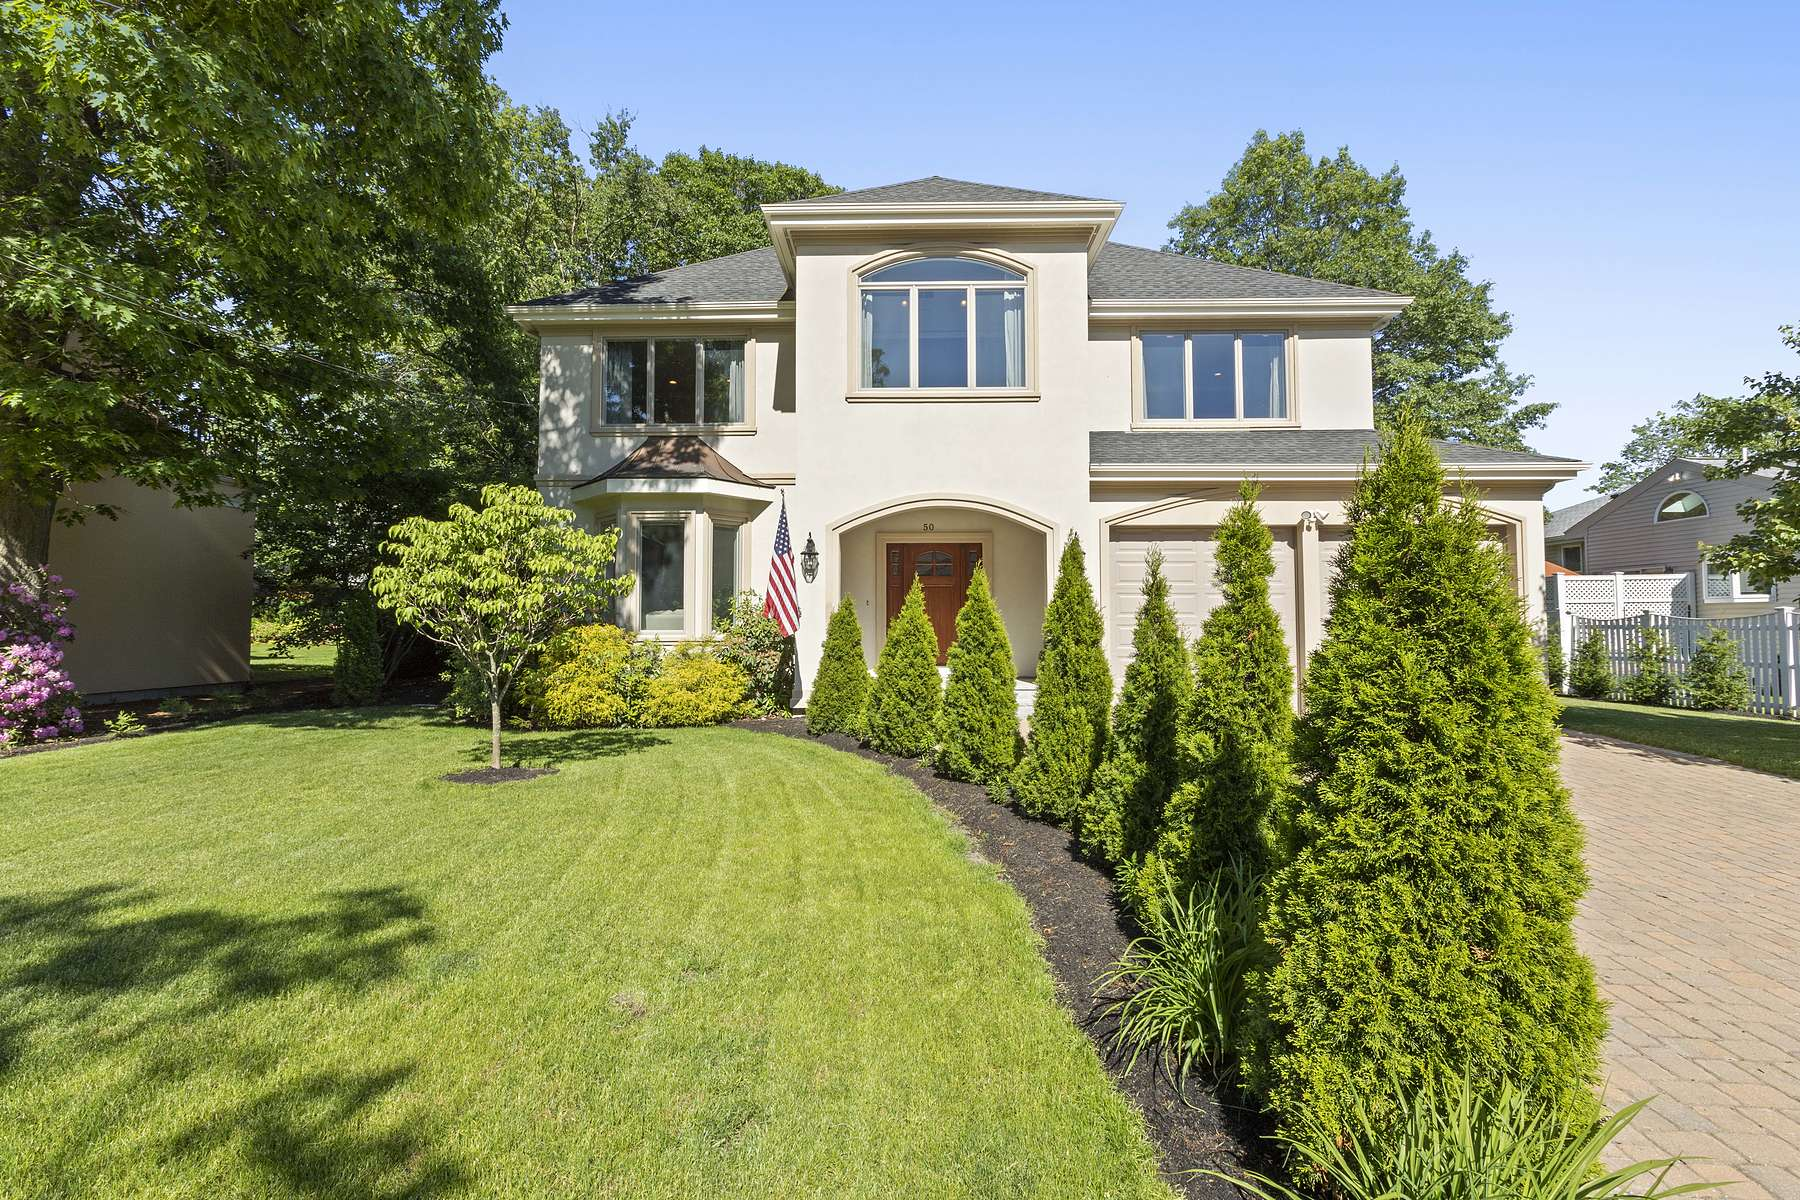 Single Family Homes for Active at Newton Home That Combines Beauty, Functionality, And Grandeur 50 Redwood Road Newton, Massachusetts 02459 United States